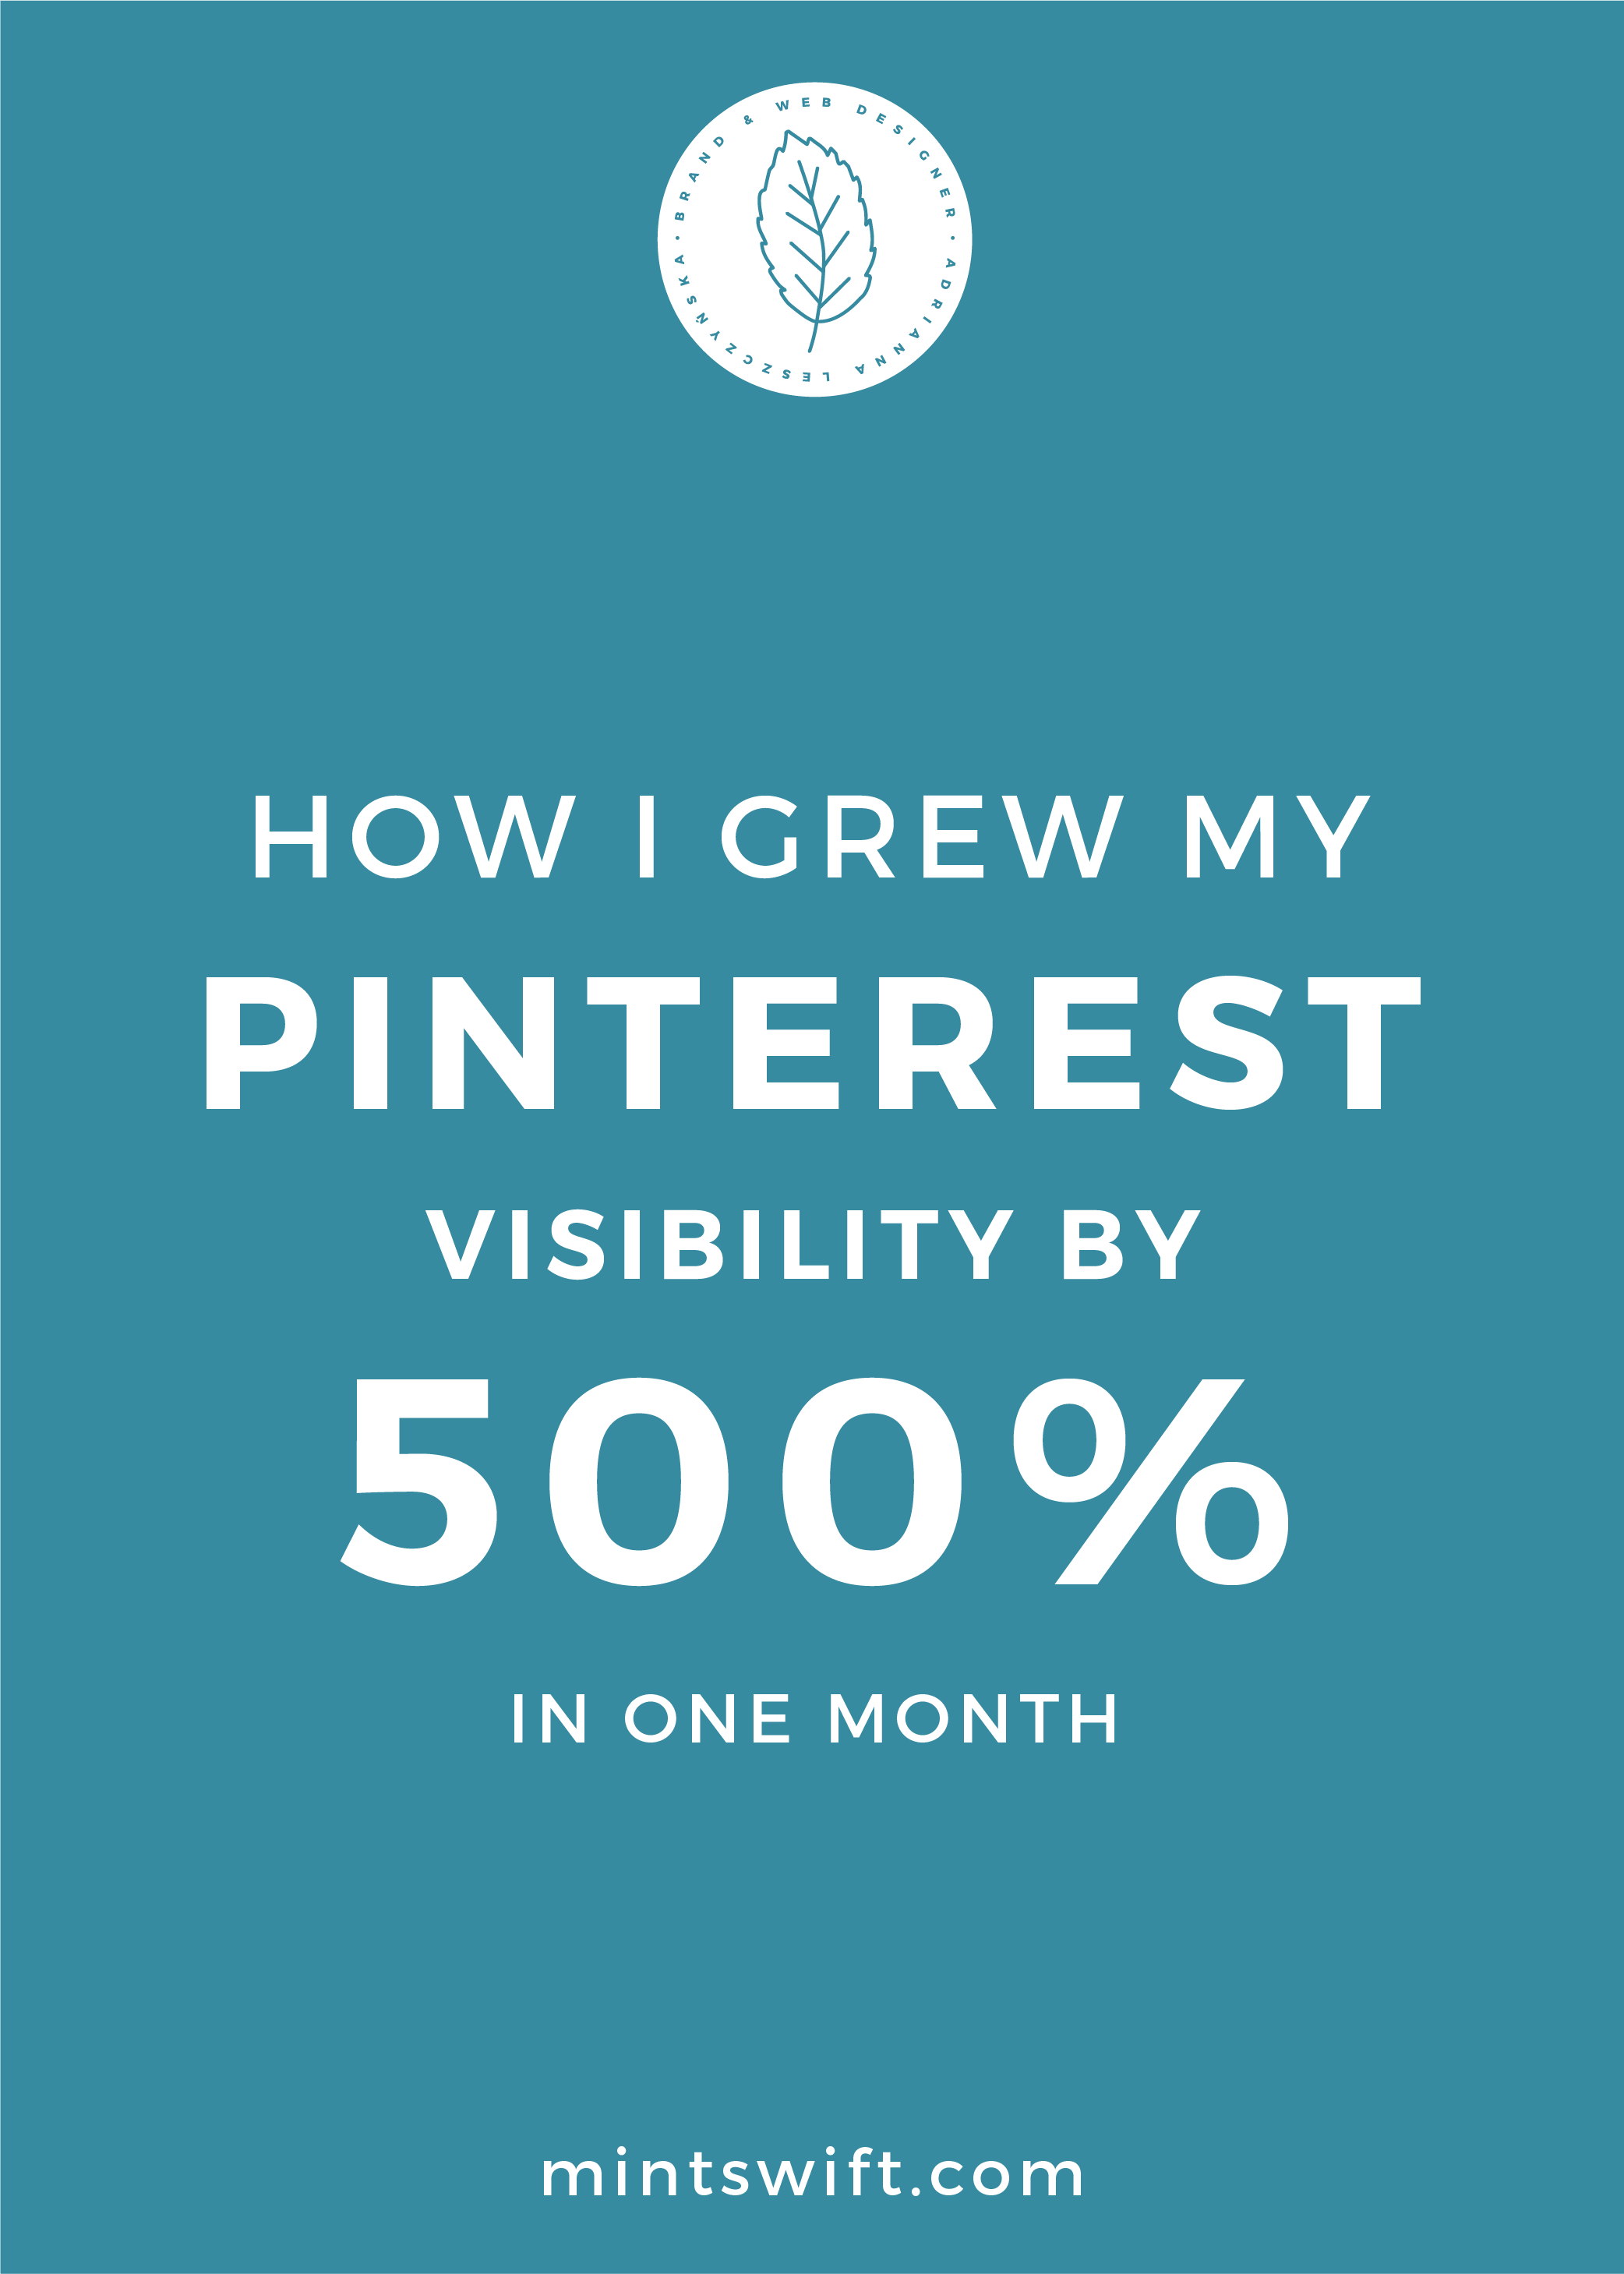 How I Grew My Pinterest Visibility by 500% in One Month - MintSwift